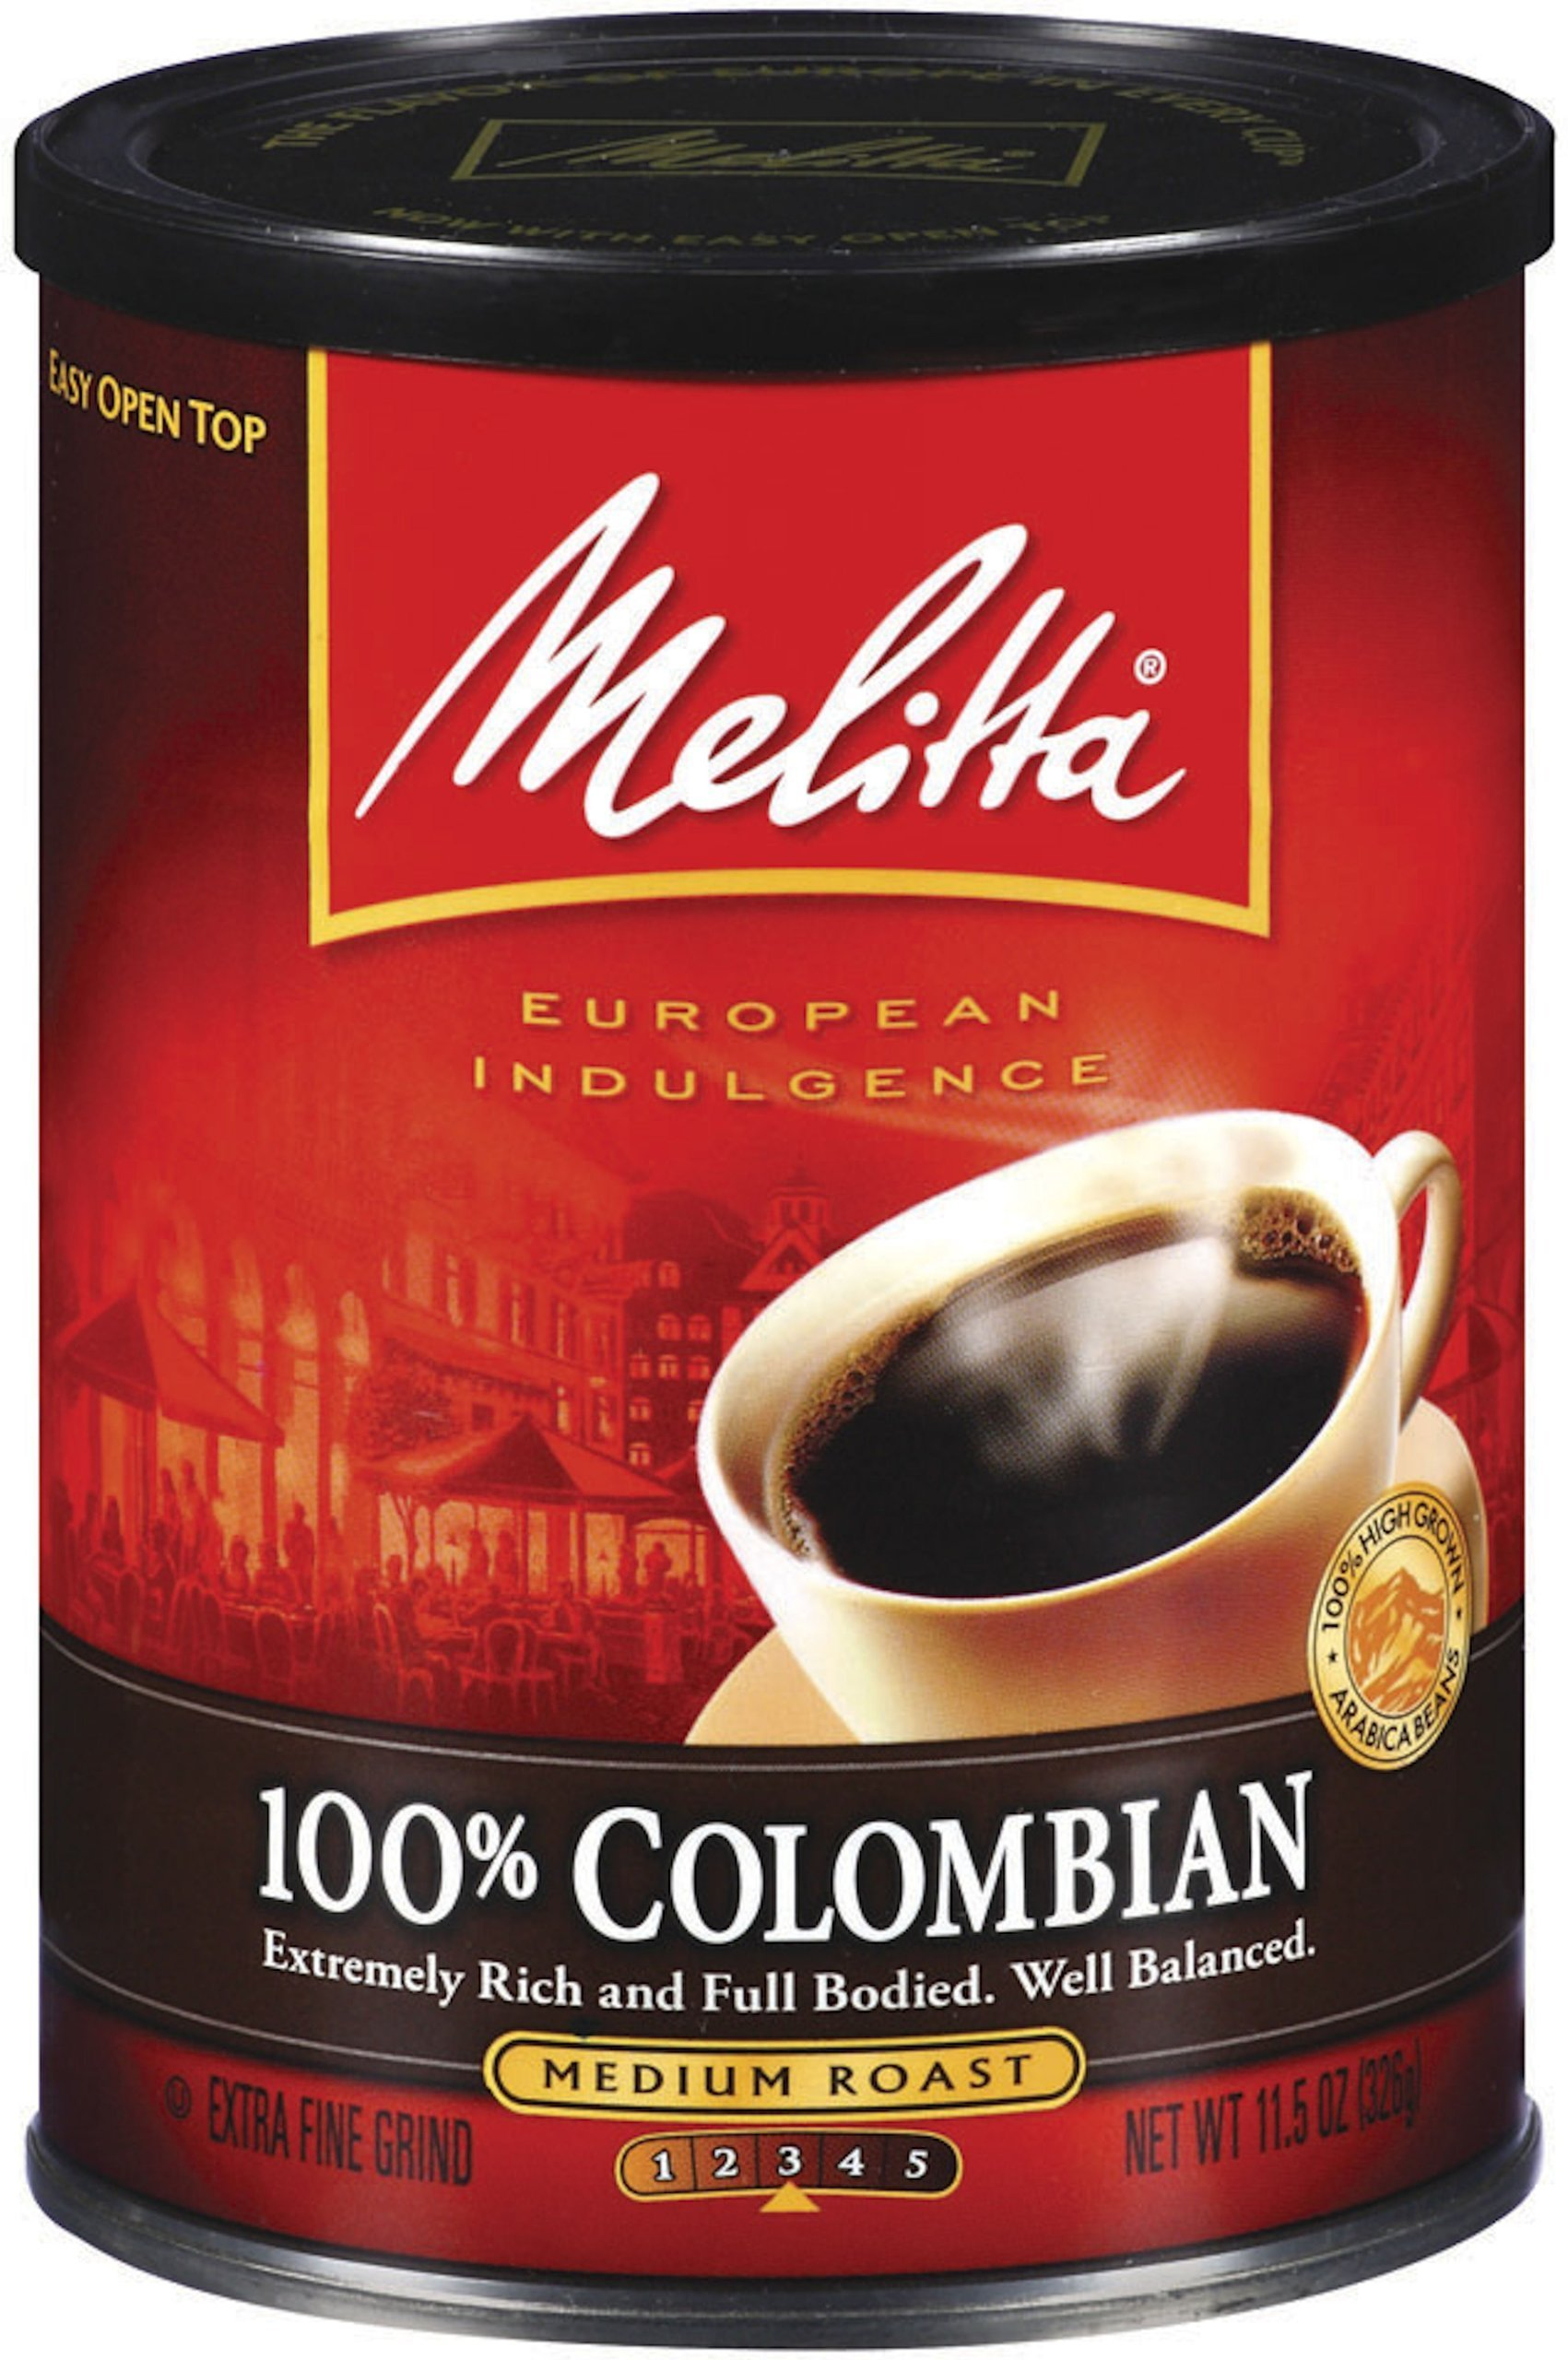 Melitta 100% Colombian Medium Roast Ground Coffee, 11.5-Ounce Cans (Pack of 4)